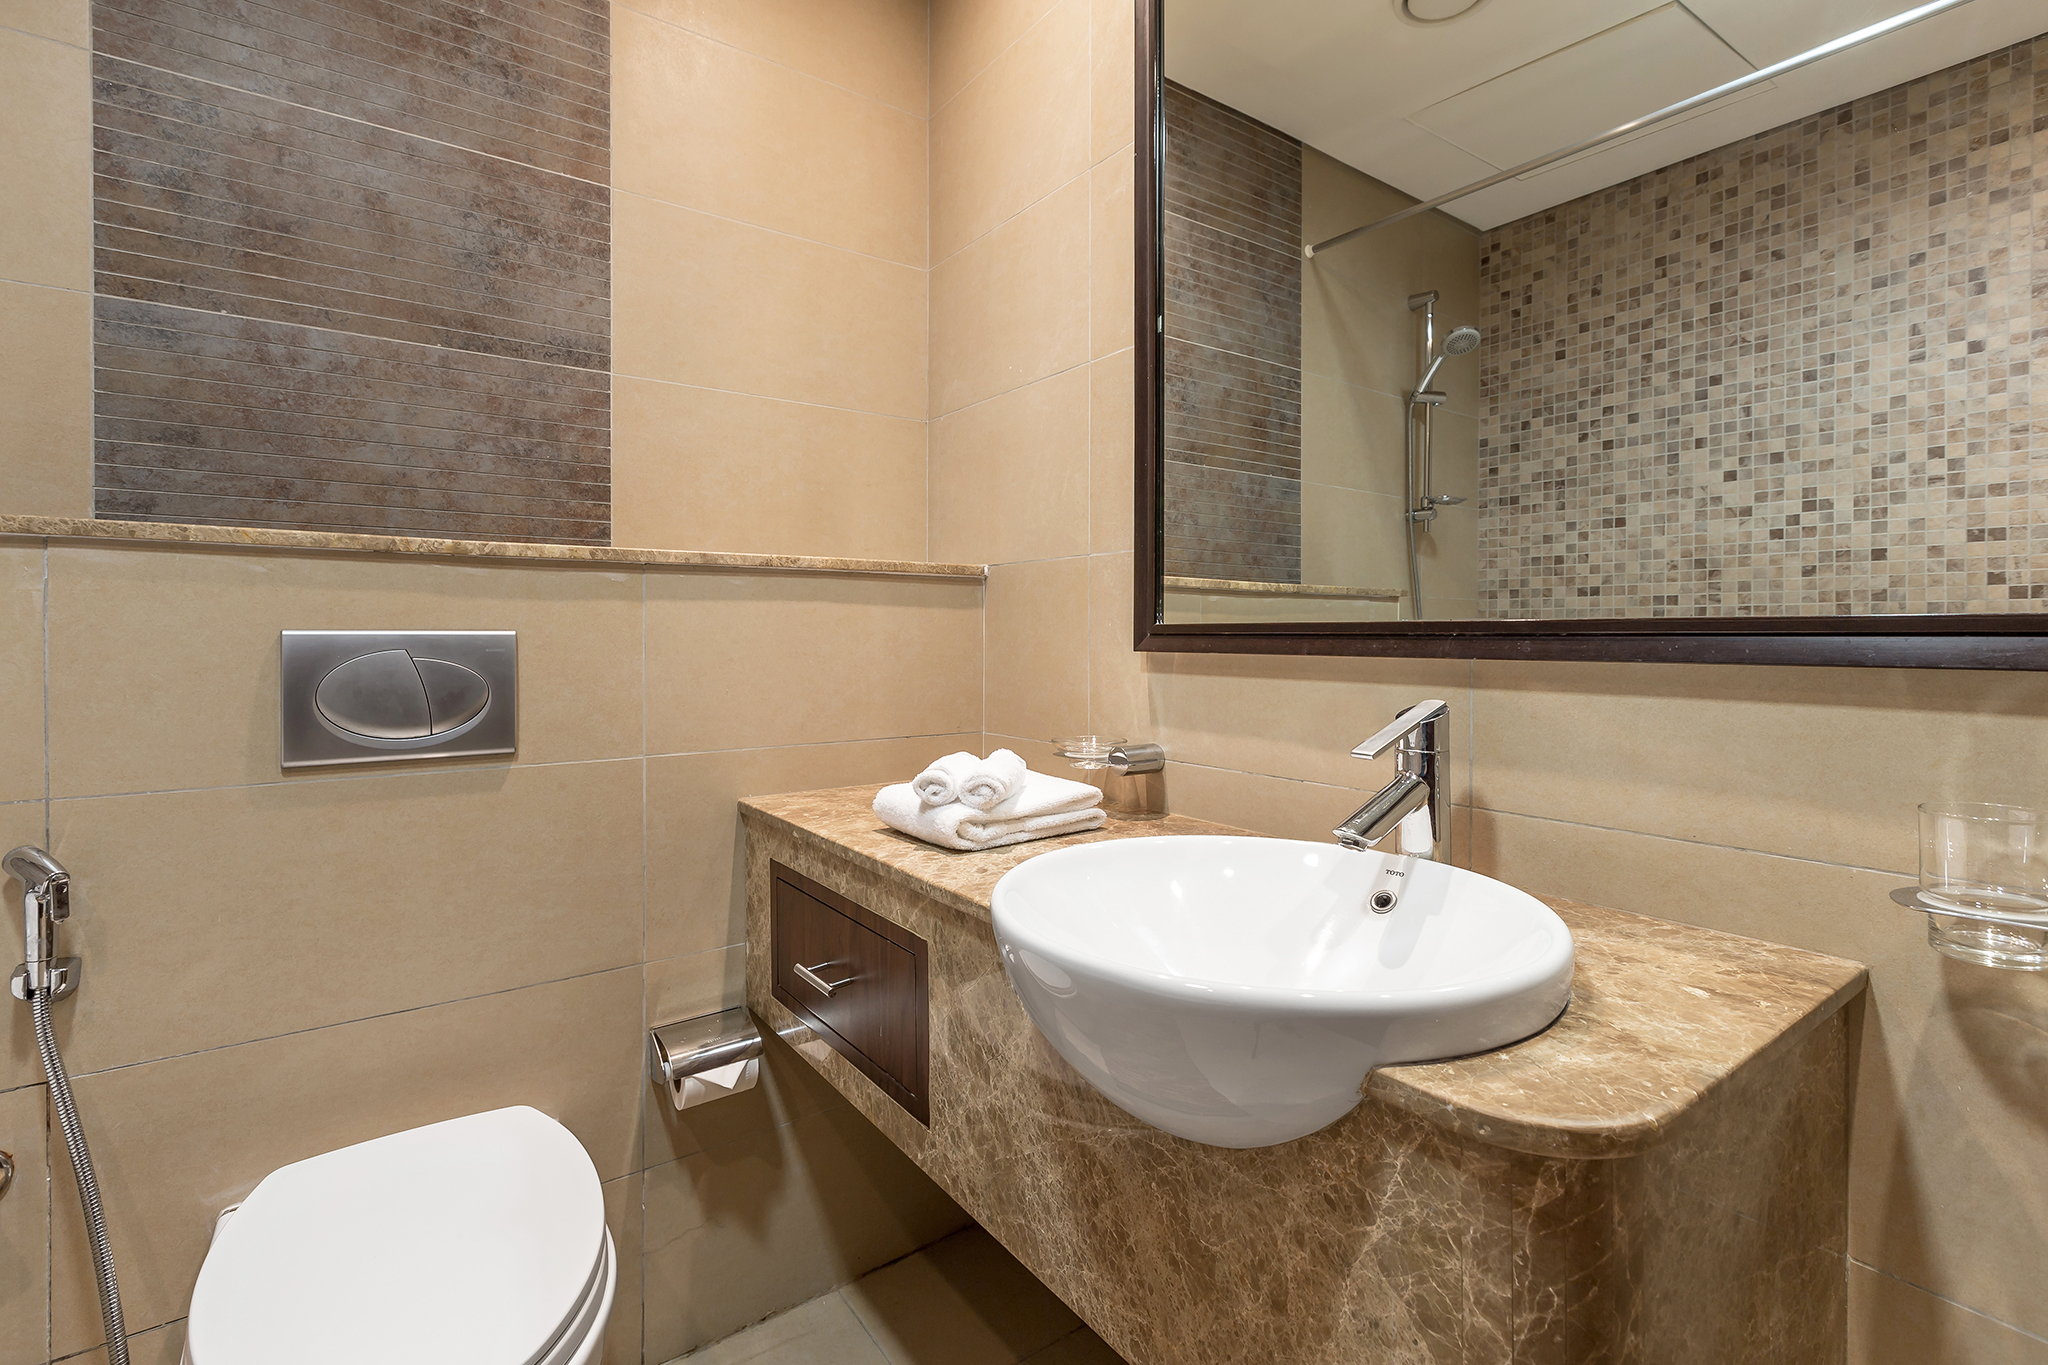 The spacious bathroom has everything you need including a large wall mirror and a hair dryer